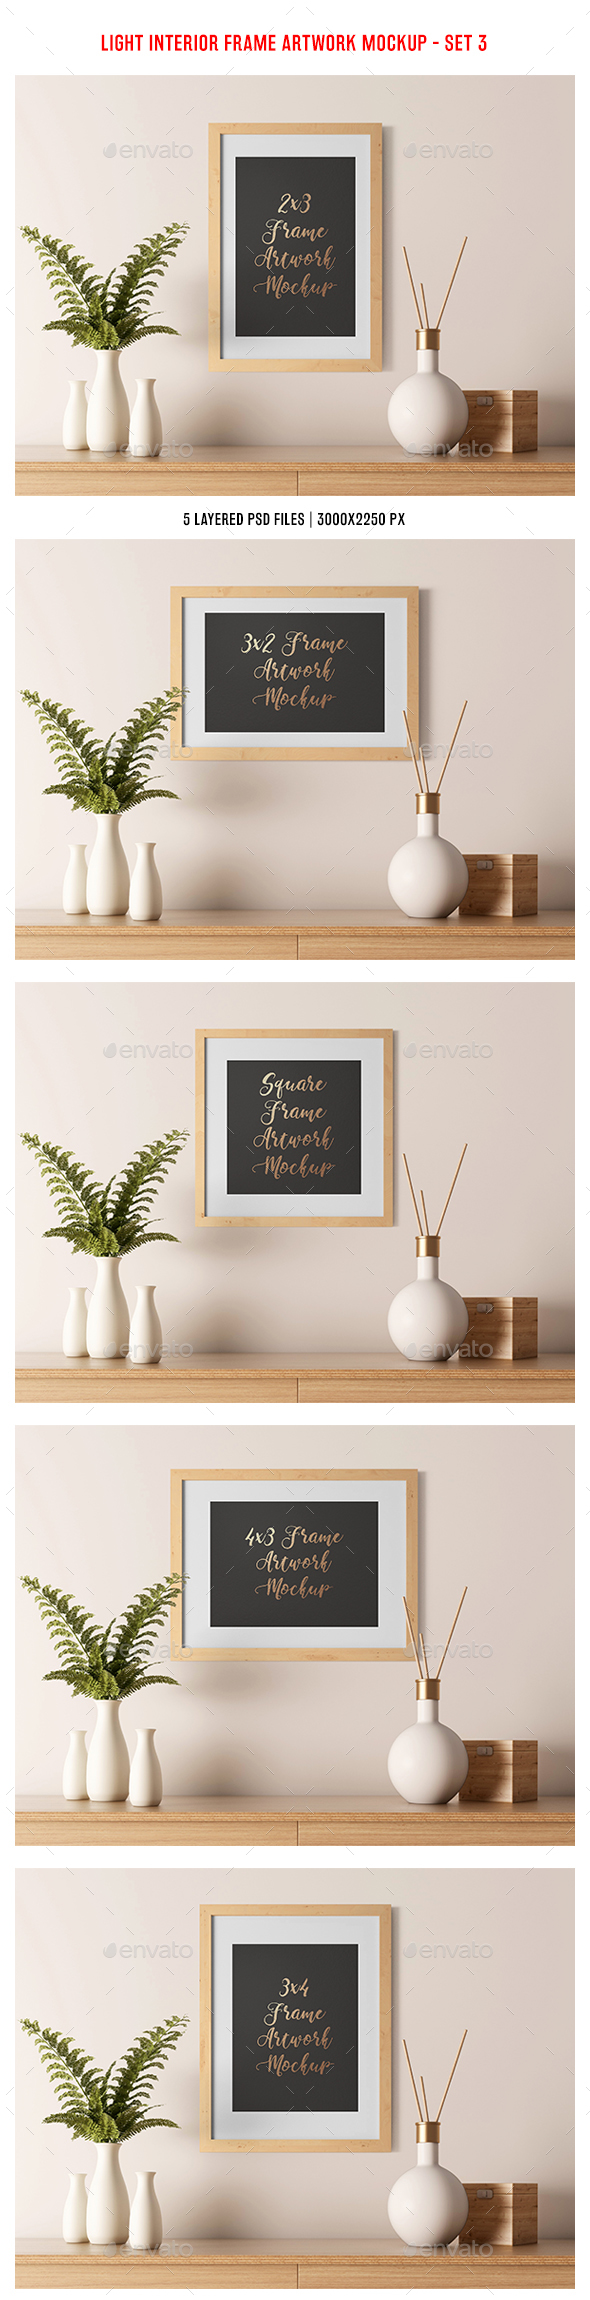 GraphicRiver Light Interior Frame Artwork Mockup Set 3 21002229